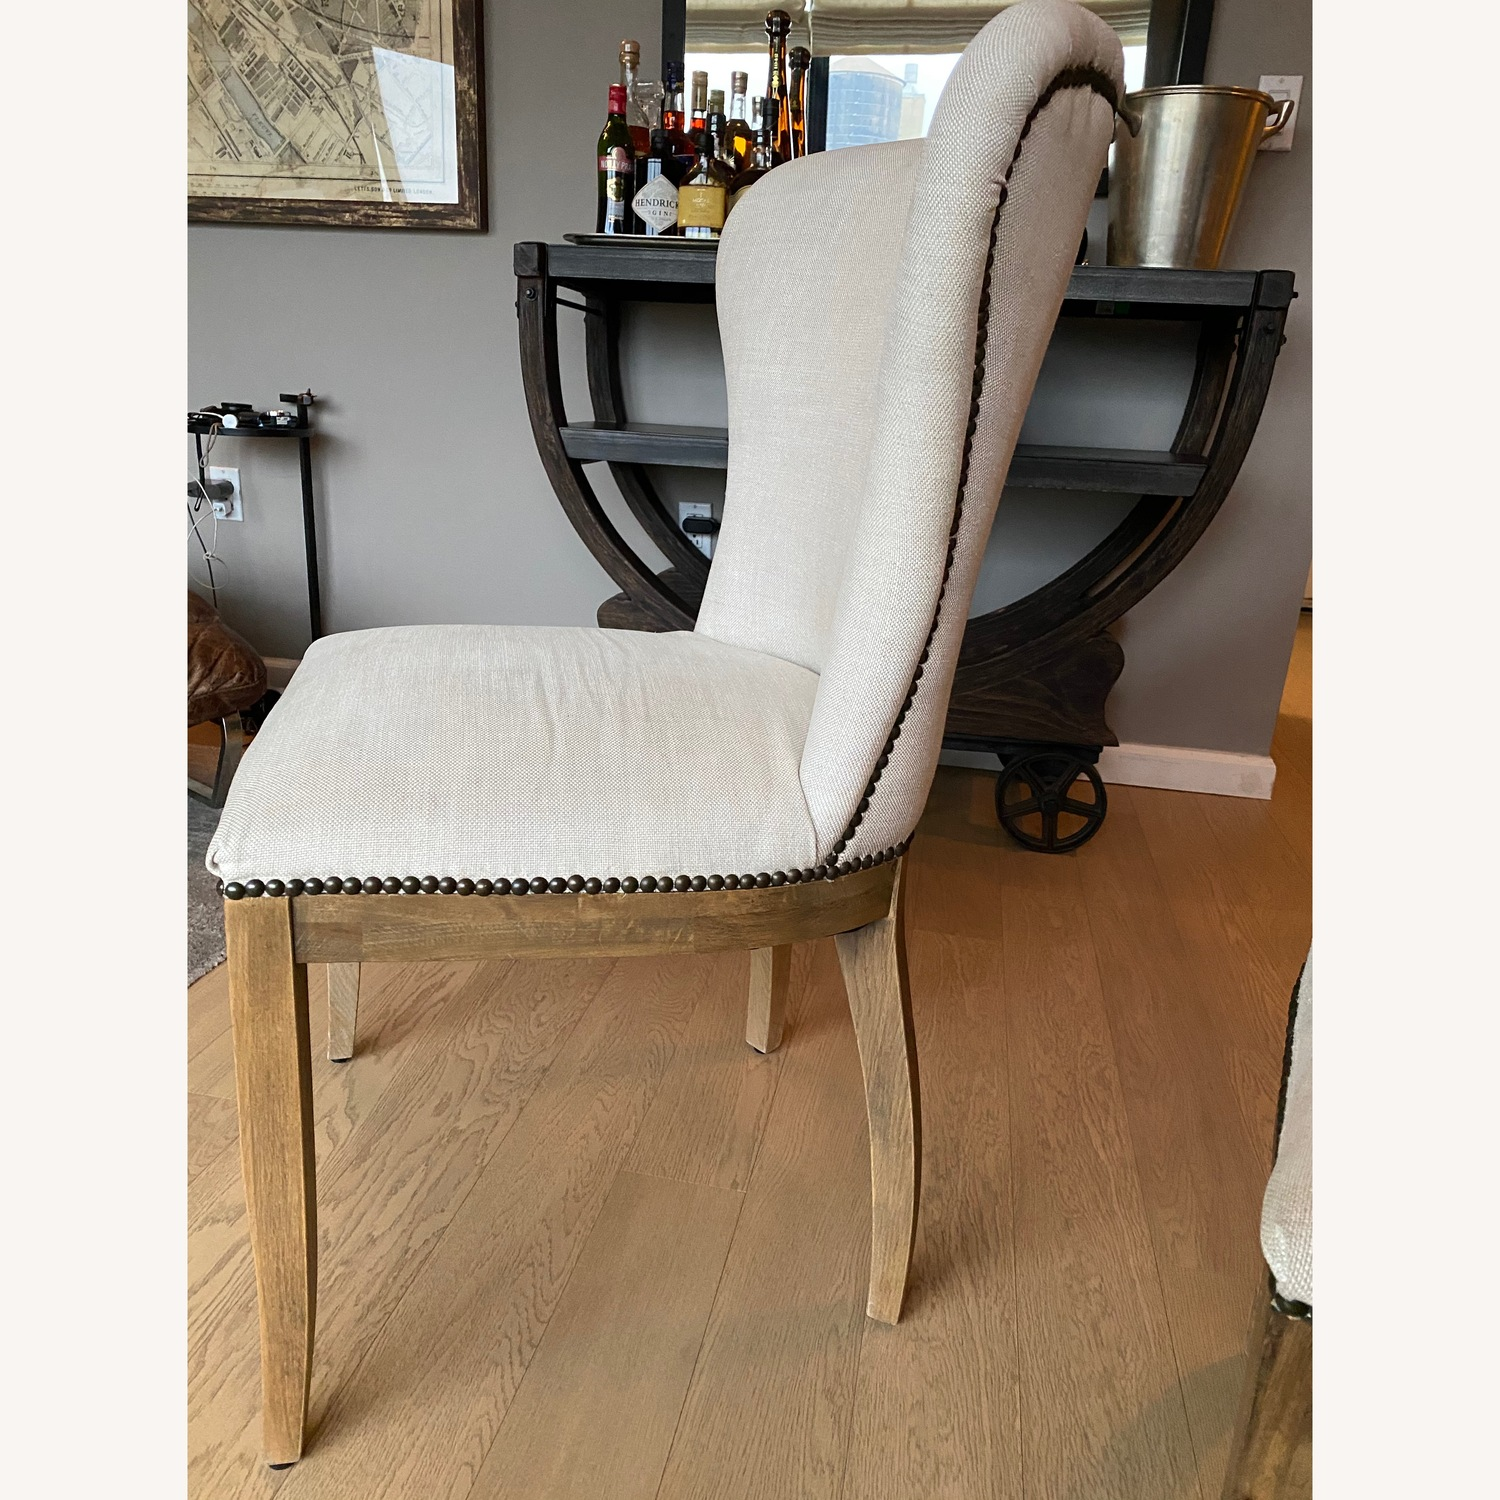 Restoration Hardware Dining Table with 2 Chairs - image-5